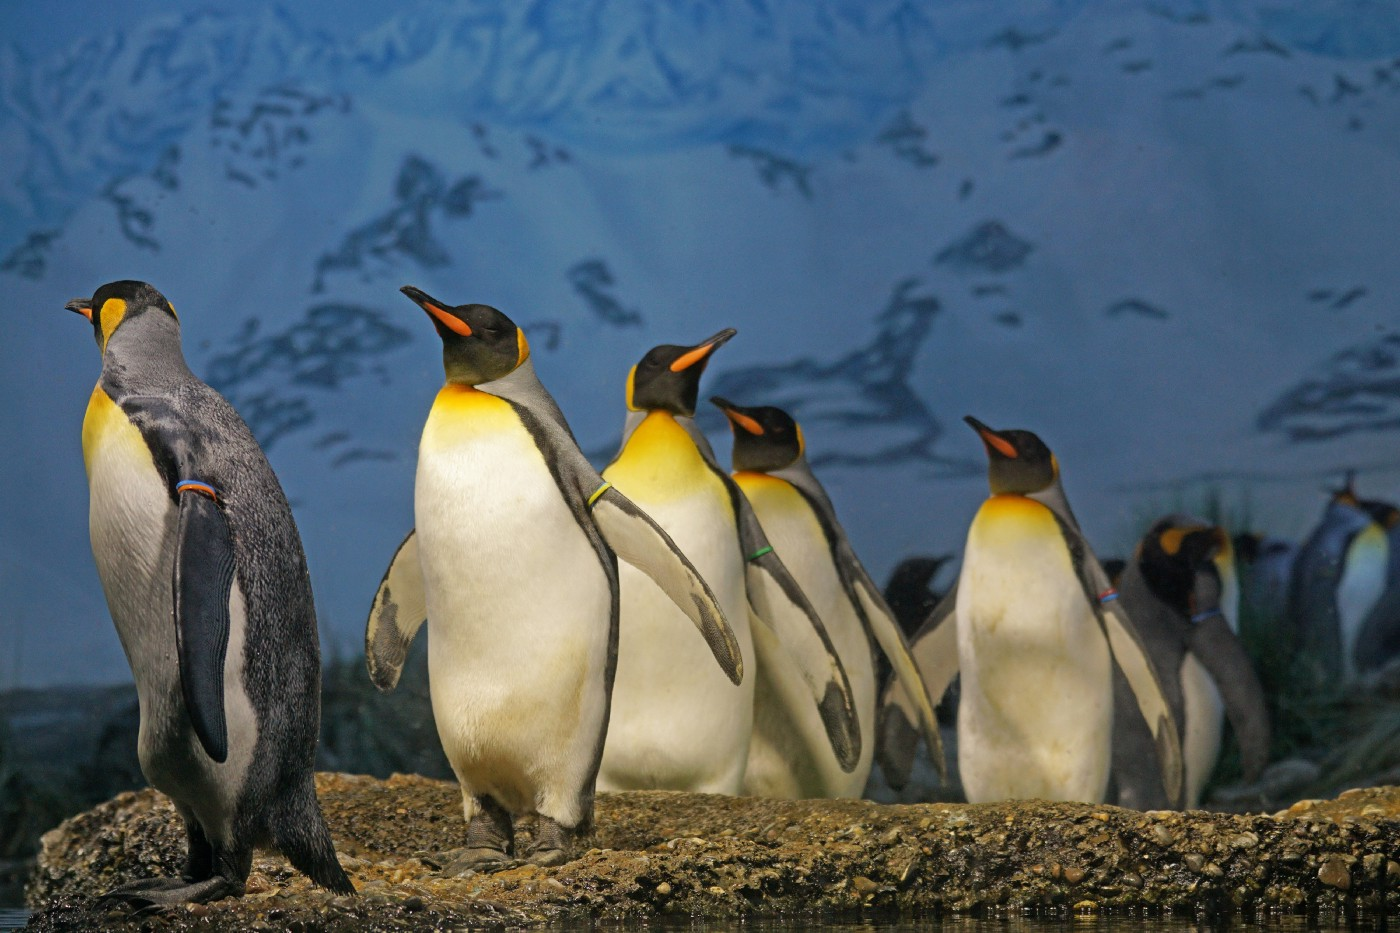 Several penguins with orange marked beaks climb a hill.